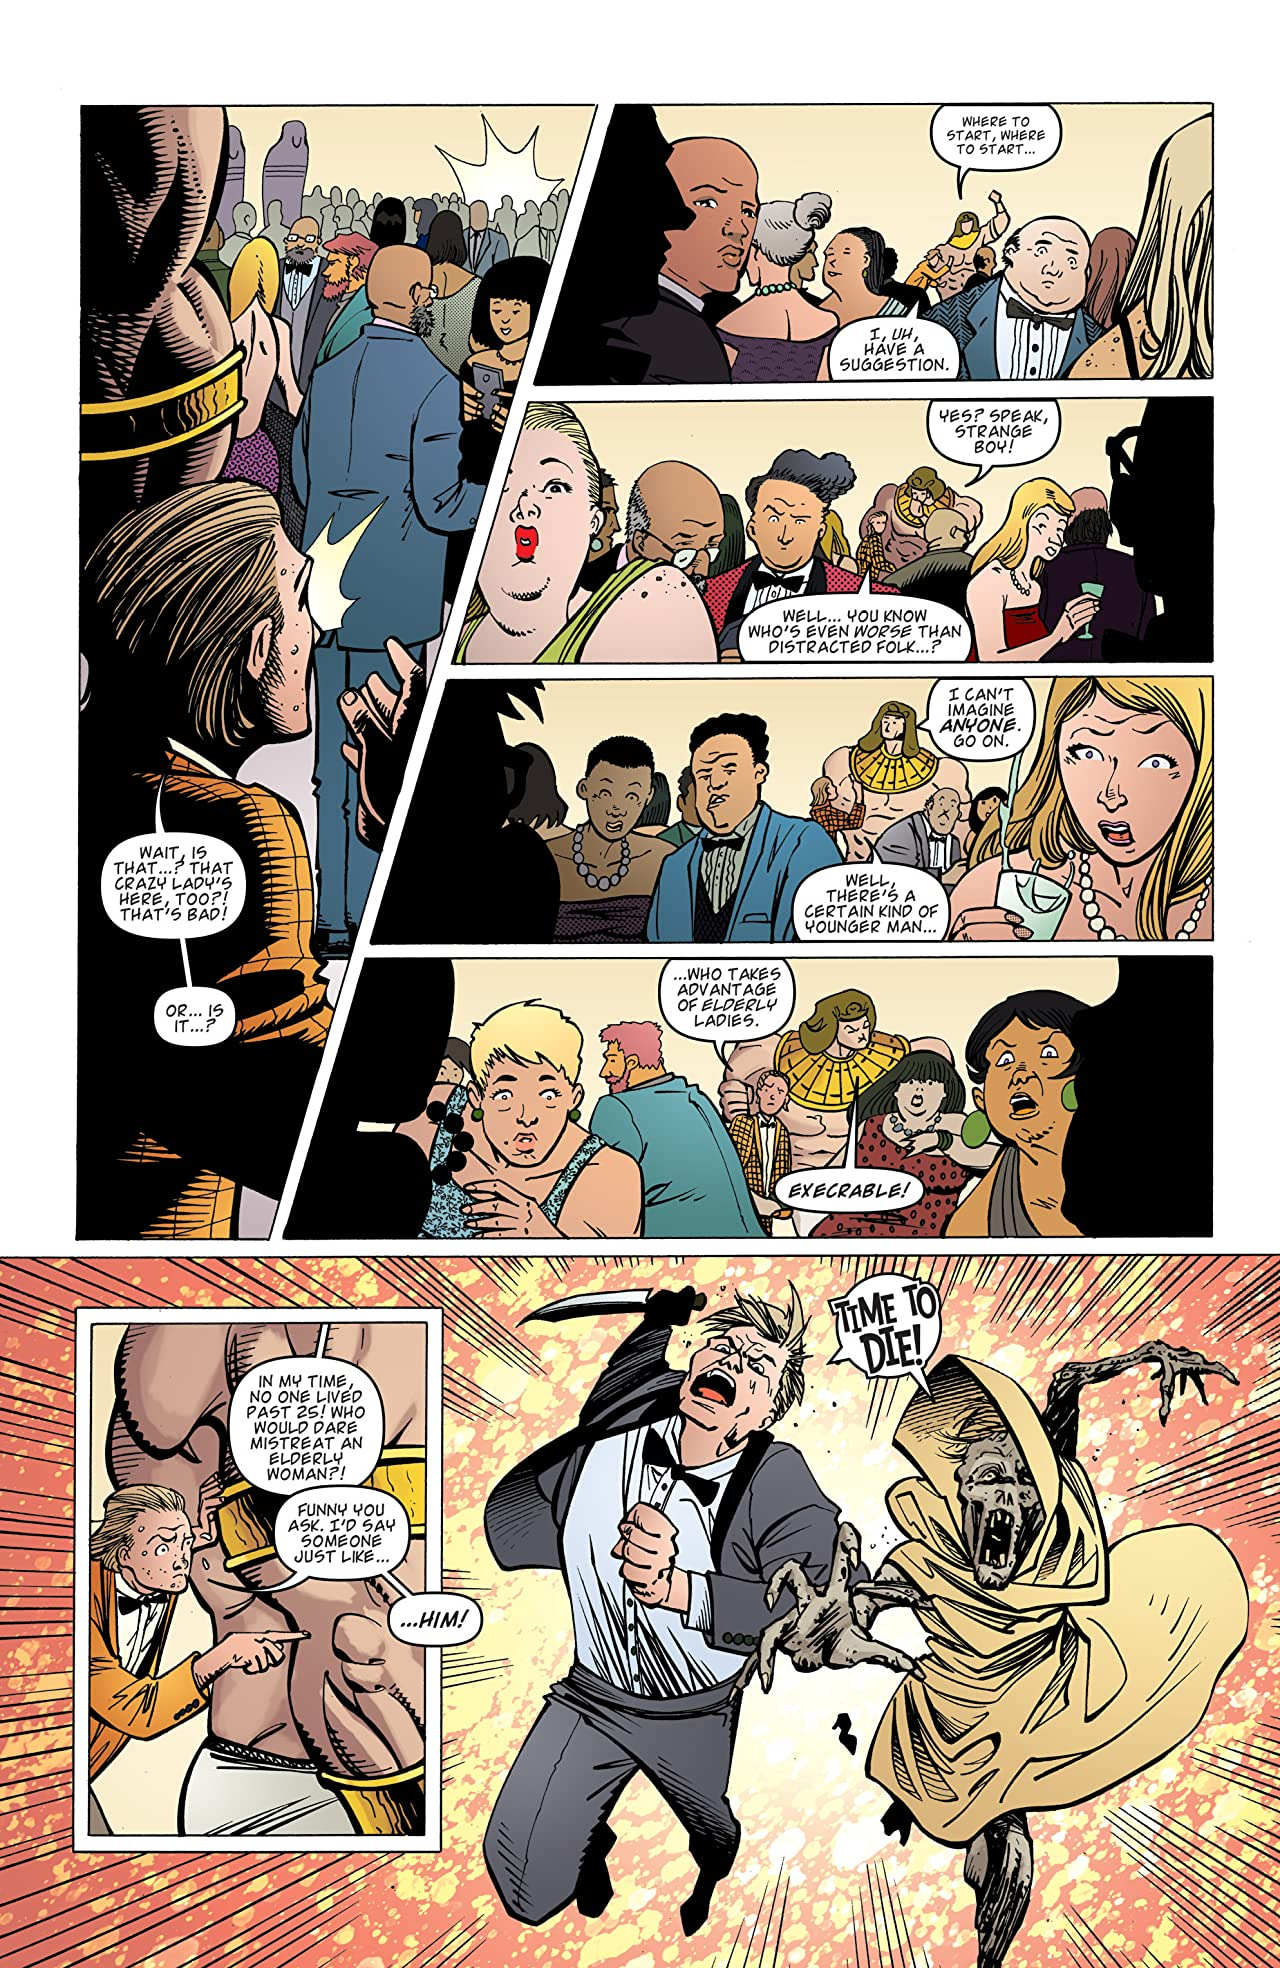 Dirk Gently's Holistic Detective Agency #5 (of 5)